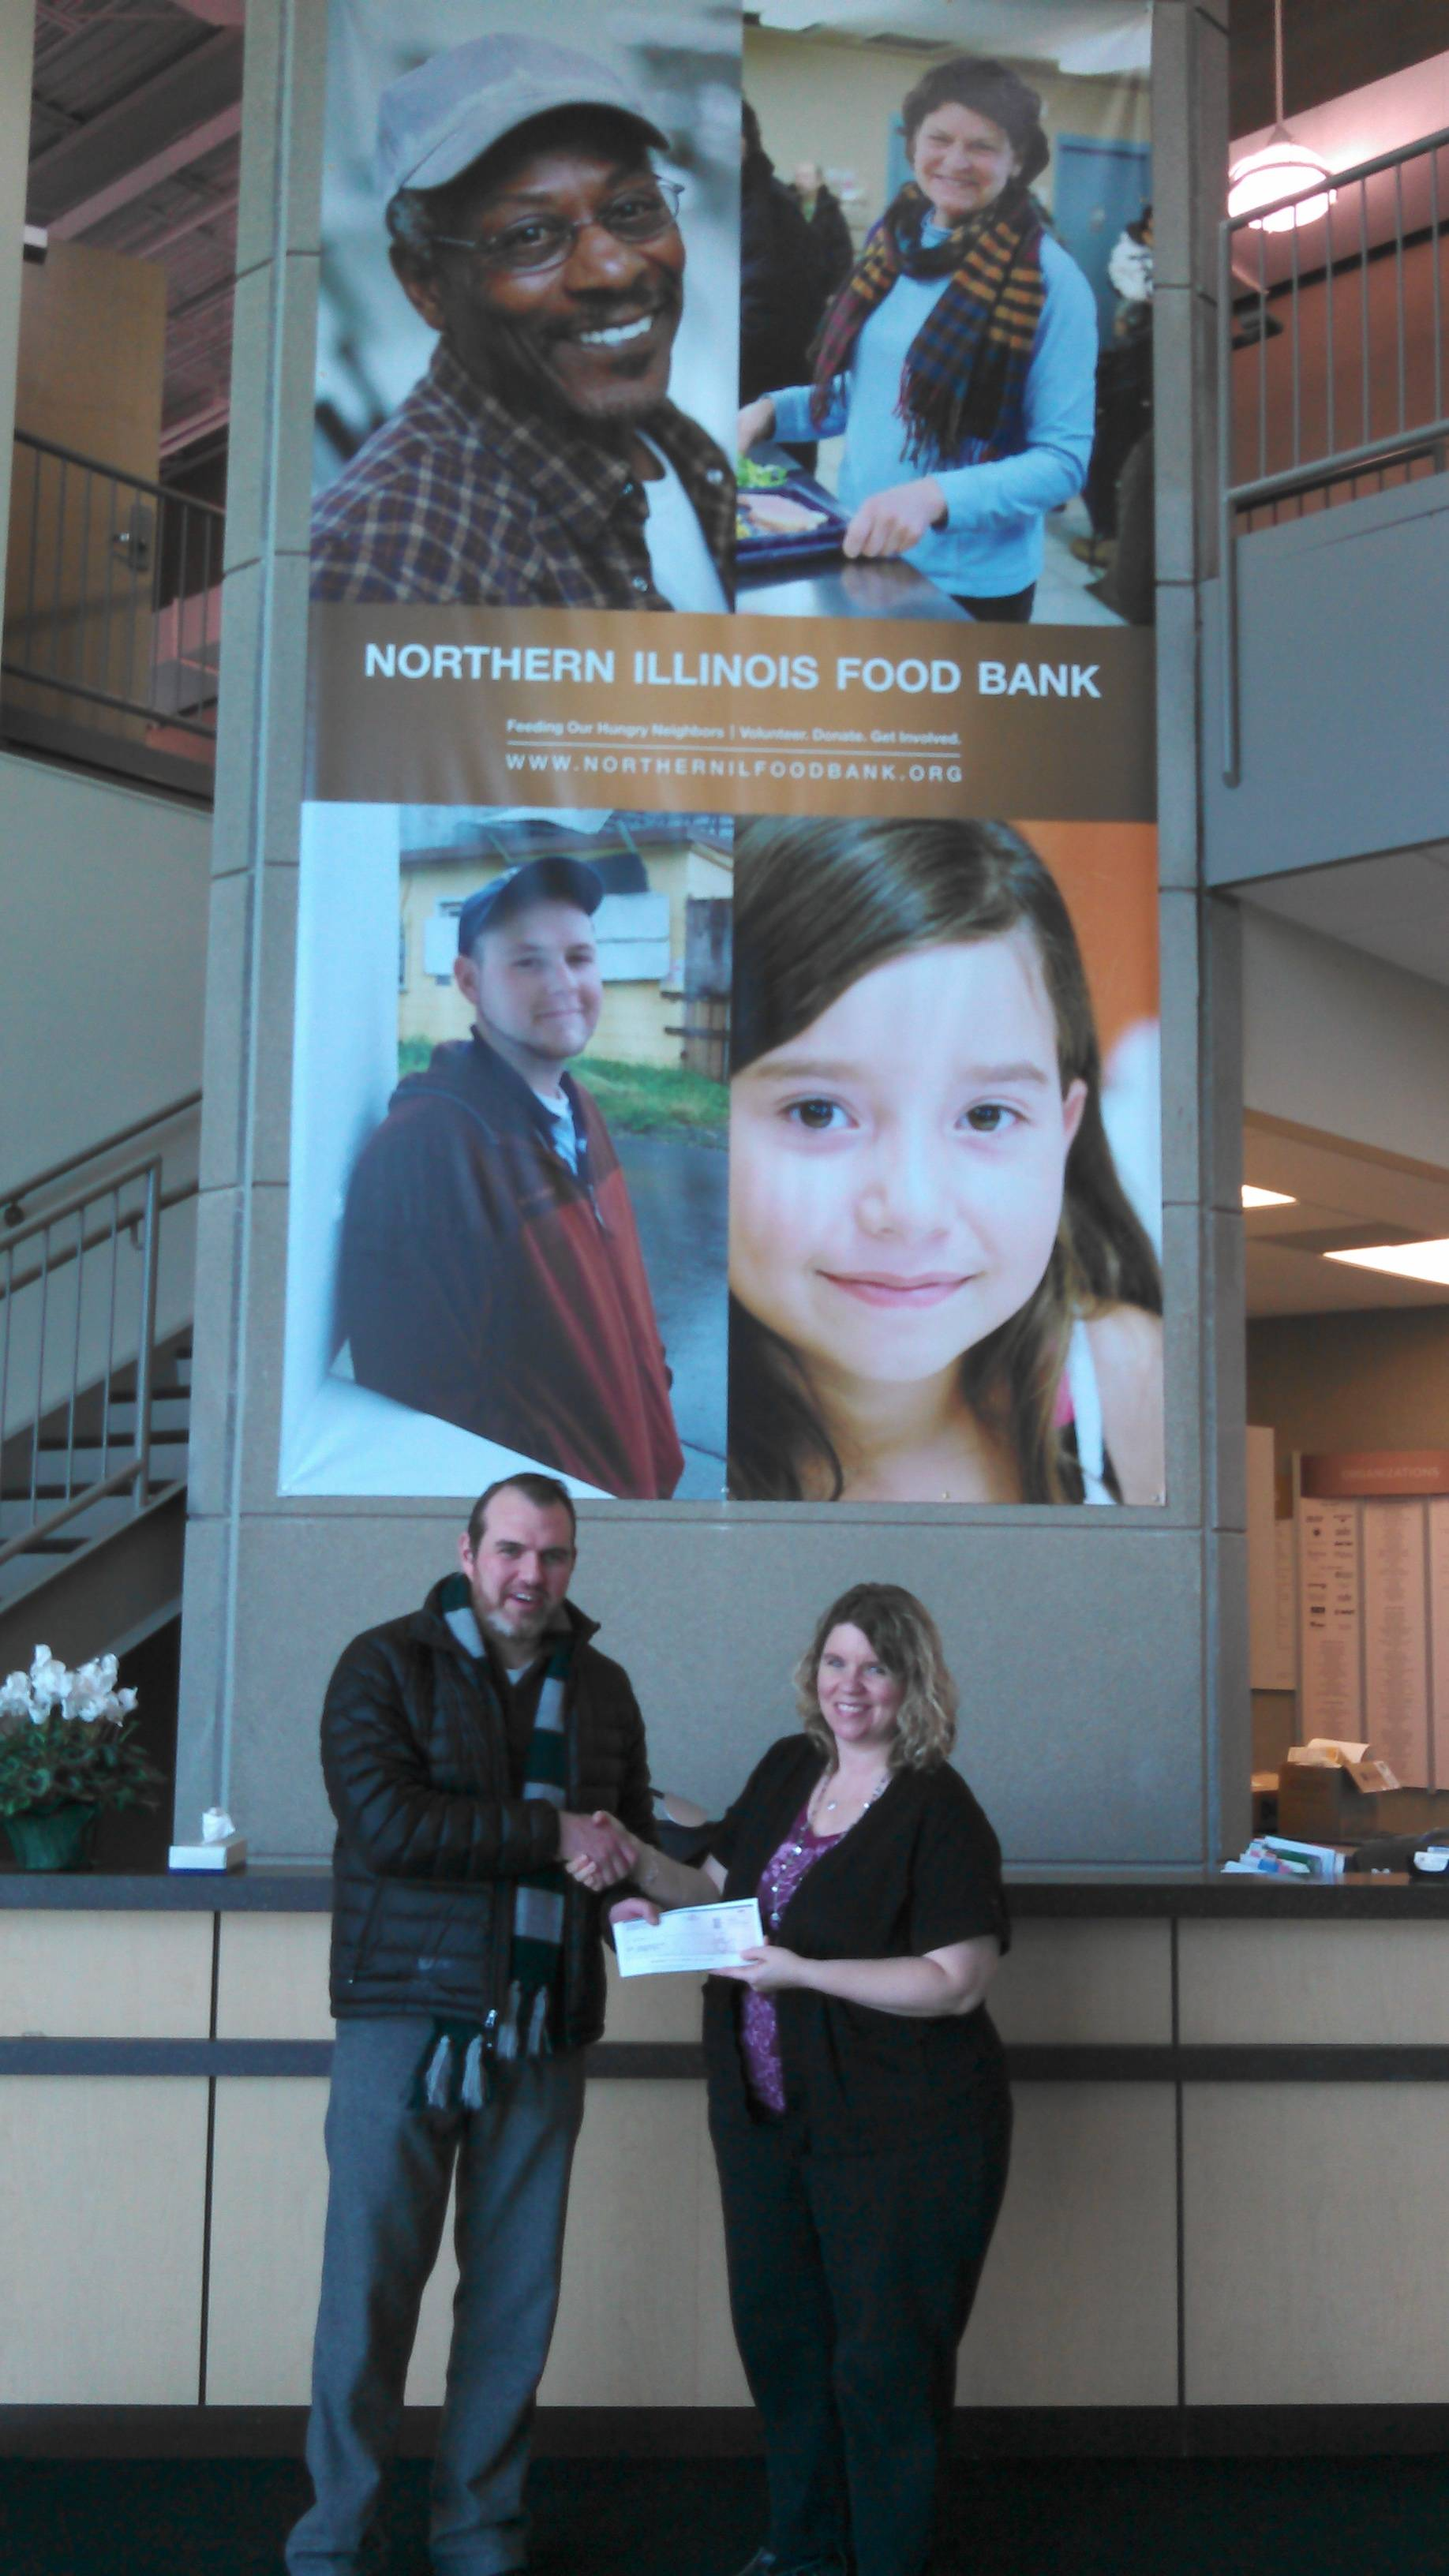 Fox Valley Rep Artistic Director John Gawlik presents Shannon Thompson of Northern Illinois Food Bank with a check for $1,000.